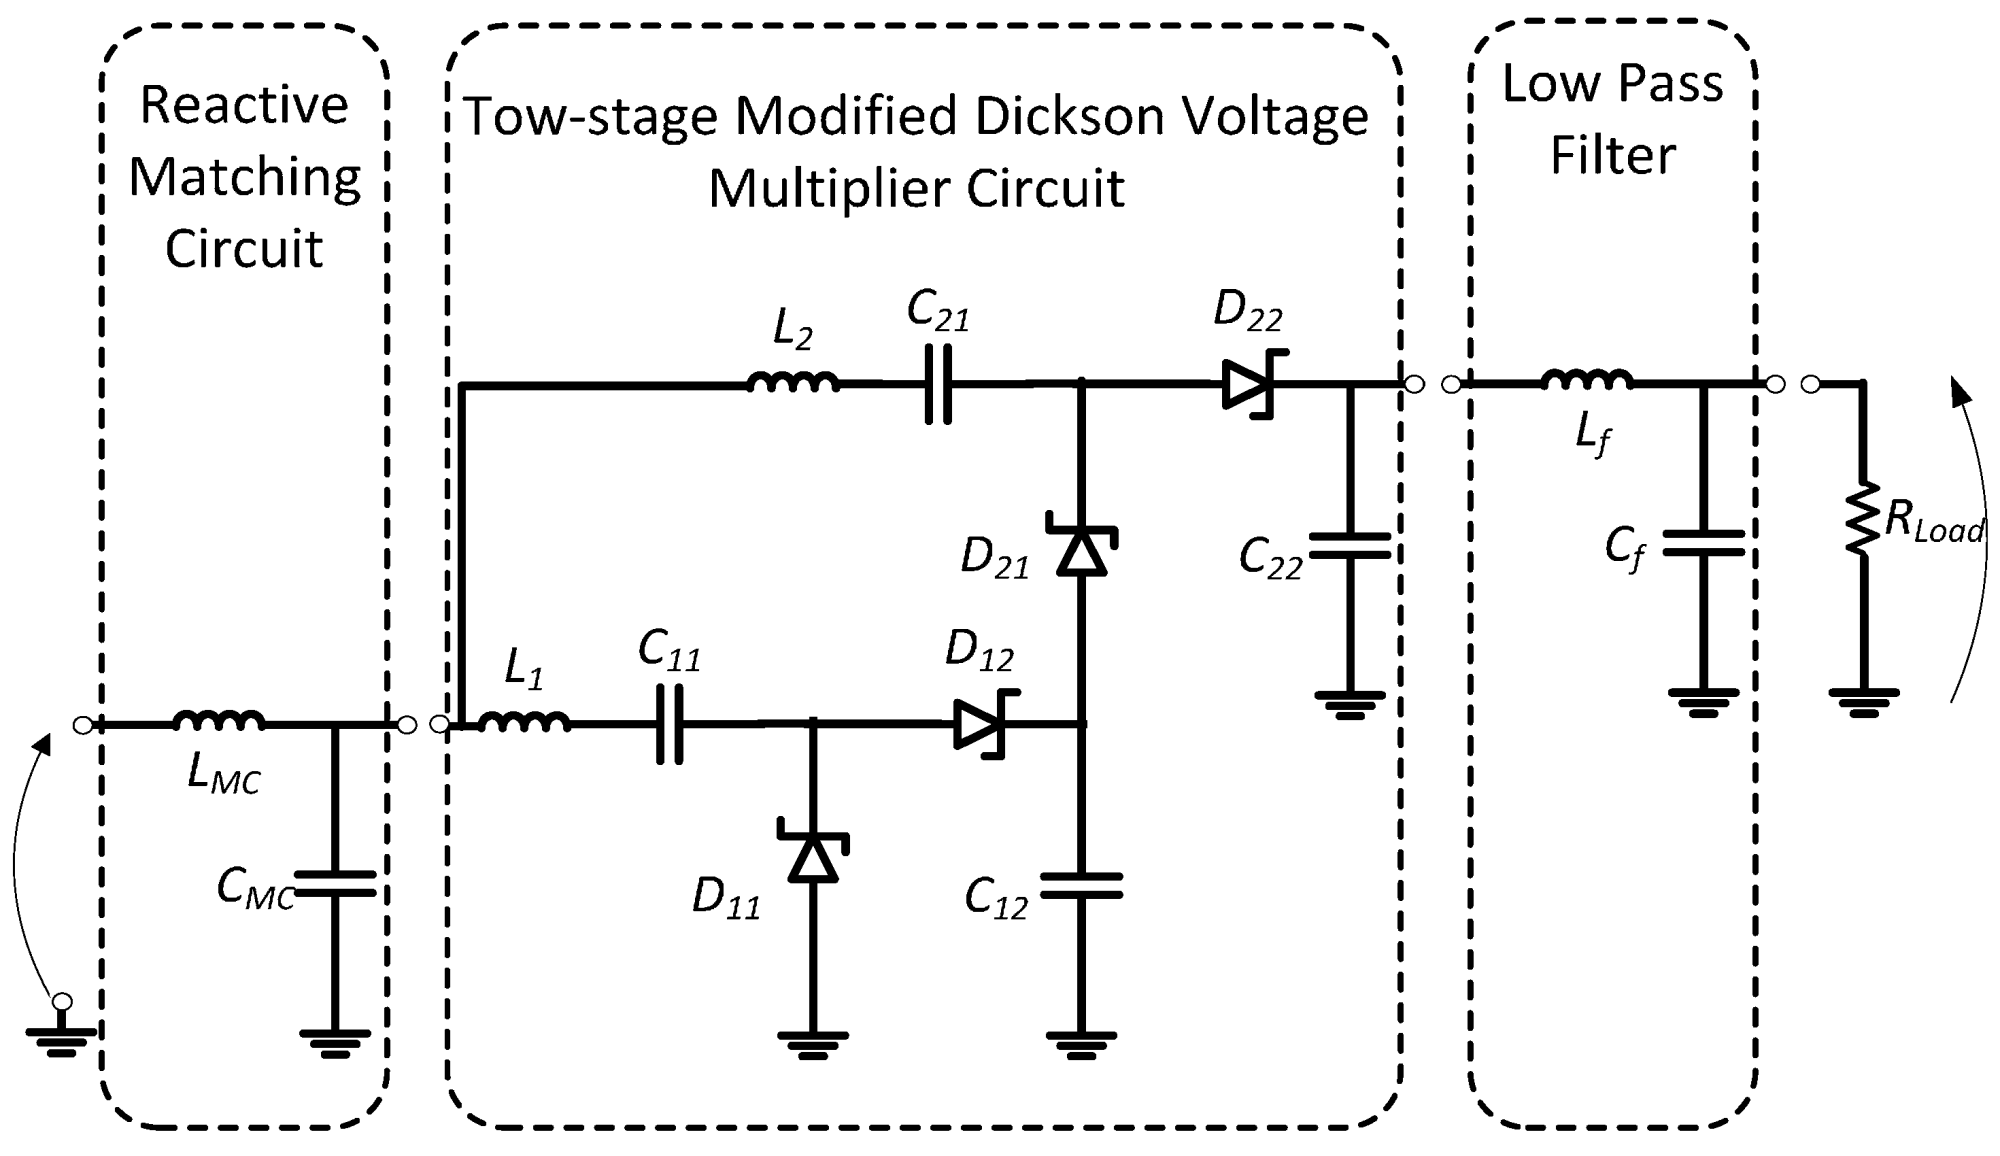 hight resolution of 1240 voltage dc to dc converter schematic the circuit schema 1240 voltage dc to dc converter schematic the circuit